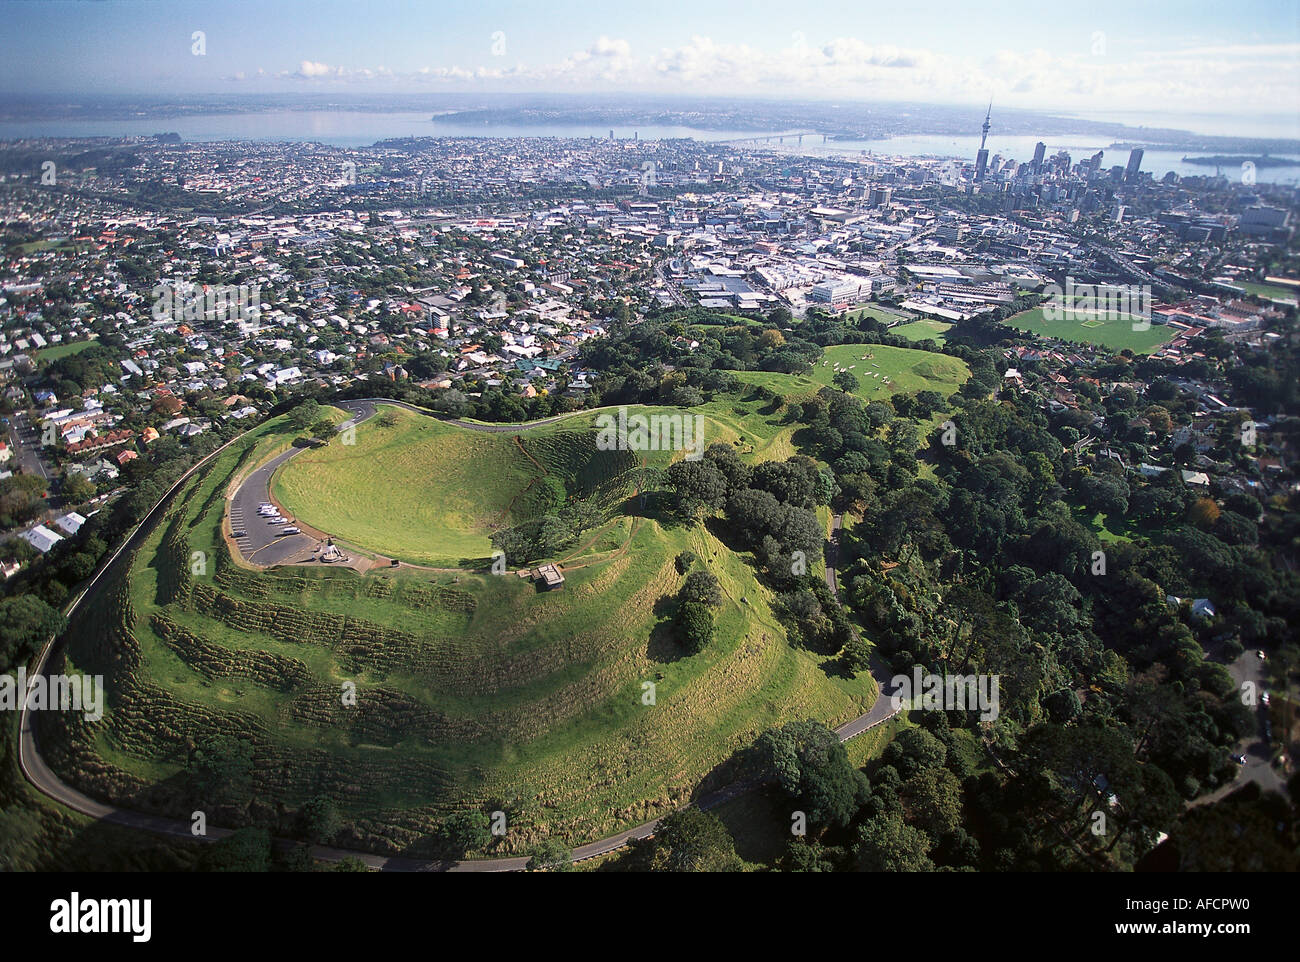 Aerial Photo, Mt. Eden Crater, Auckland, North Island, New Zealand - Stock Image